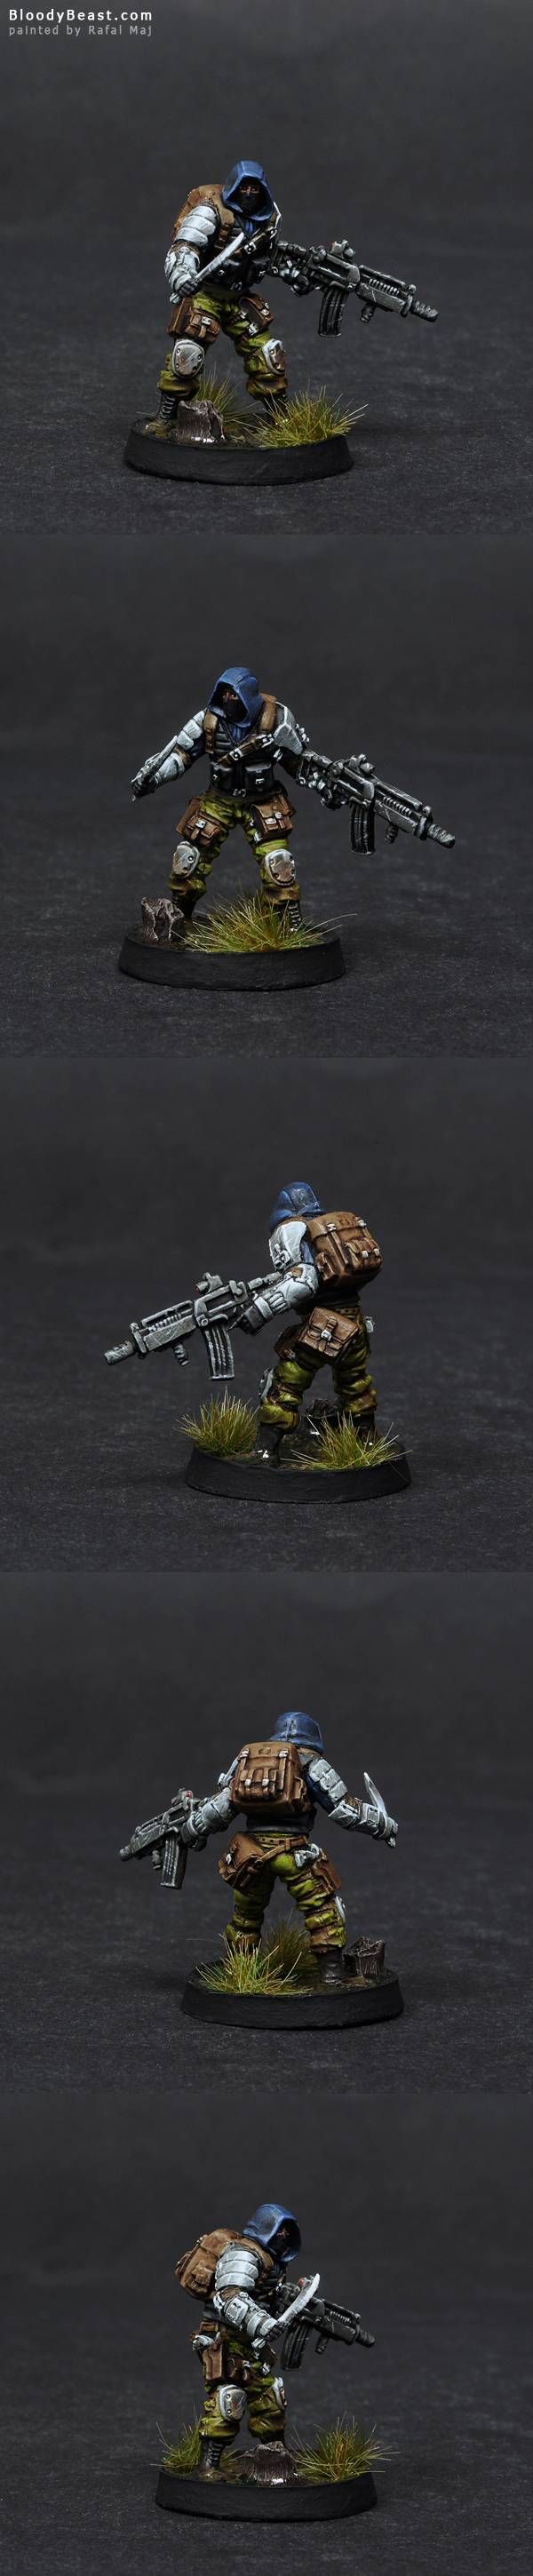 Ariadna Intel Spec-Op painted by Rafal Maj (BloodyBeast.com)